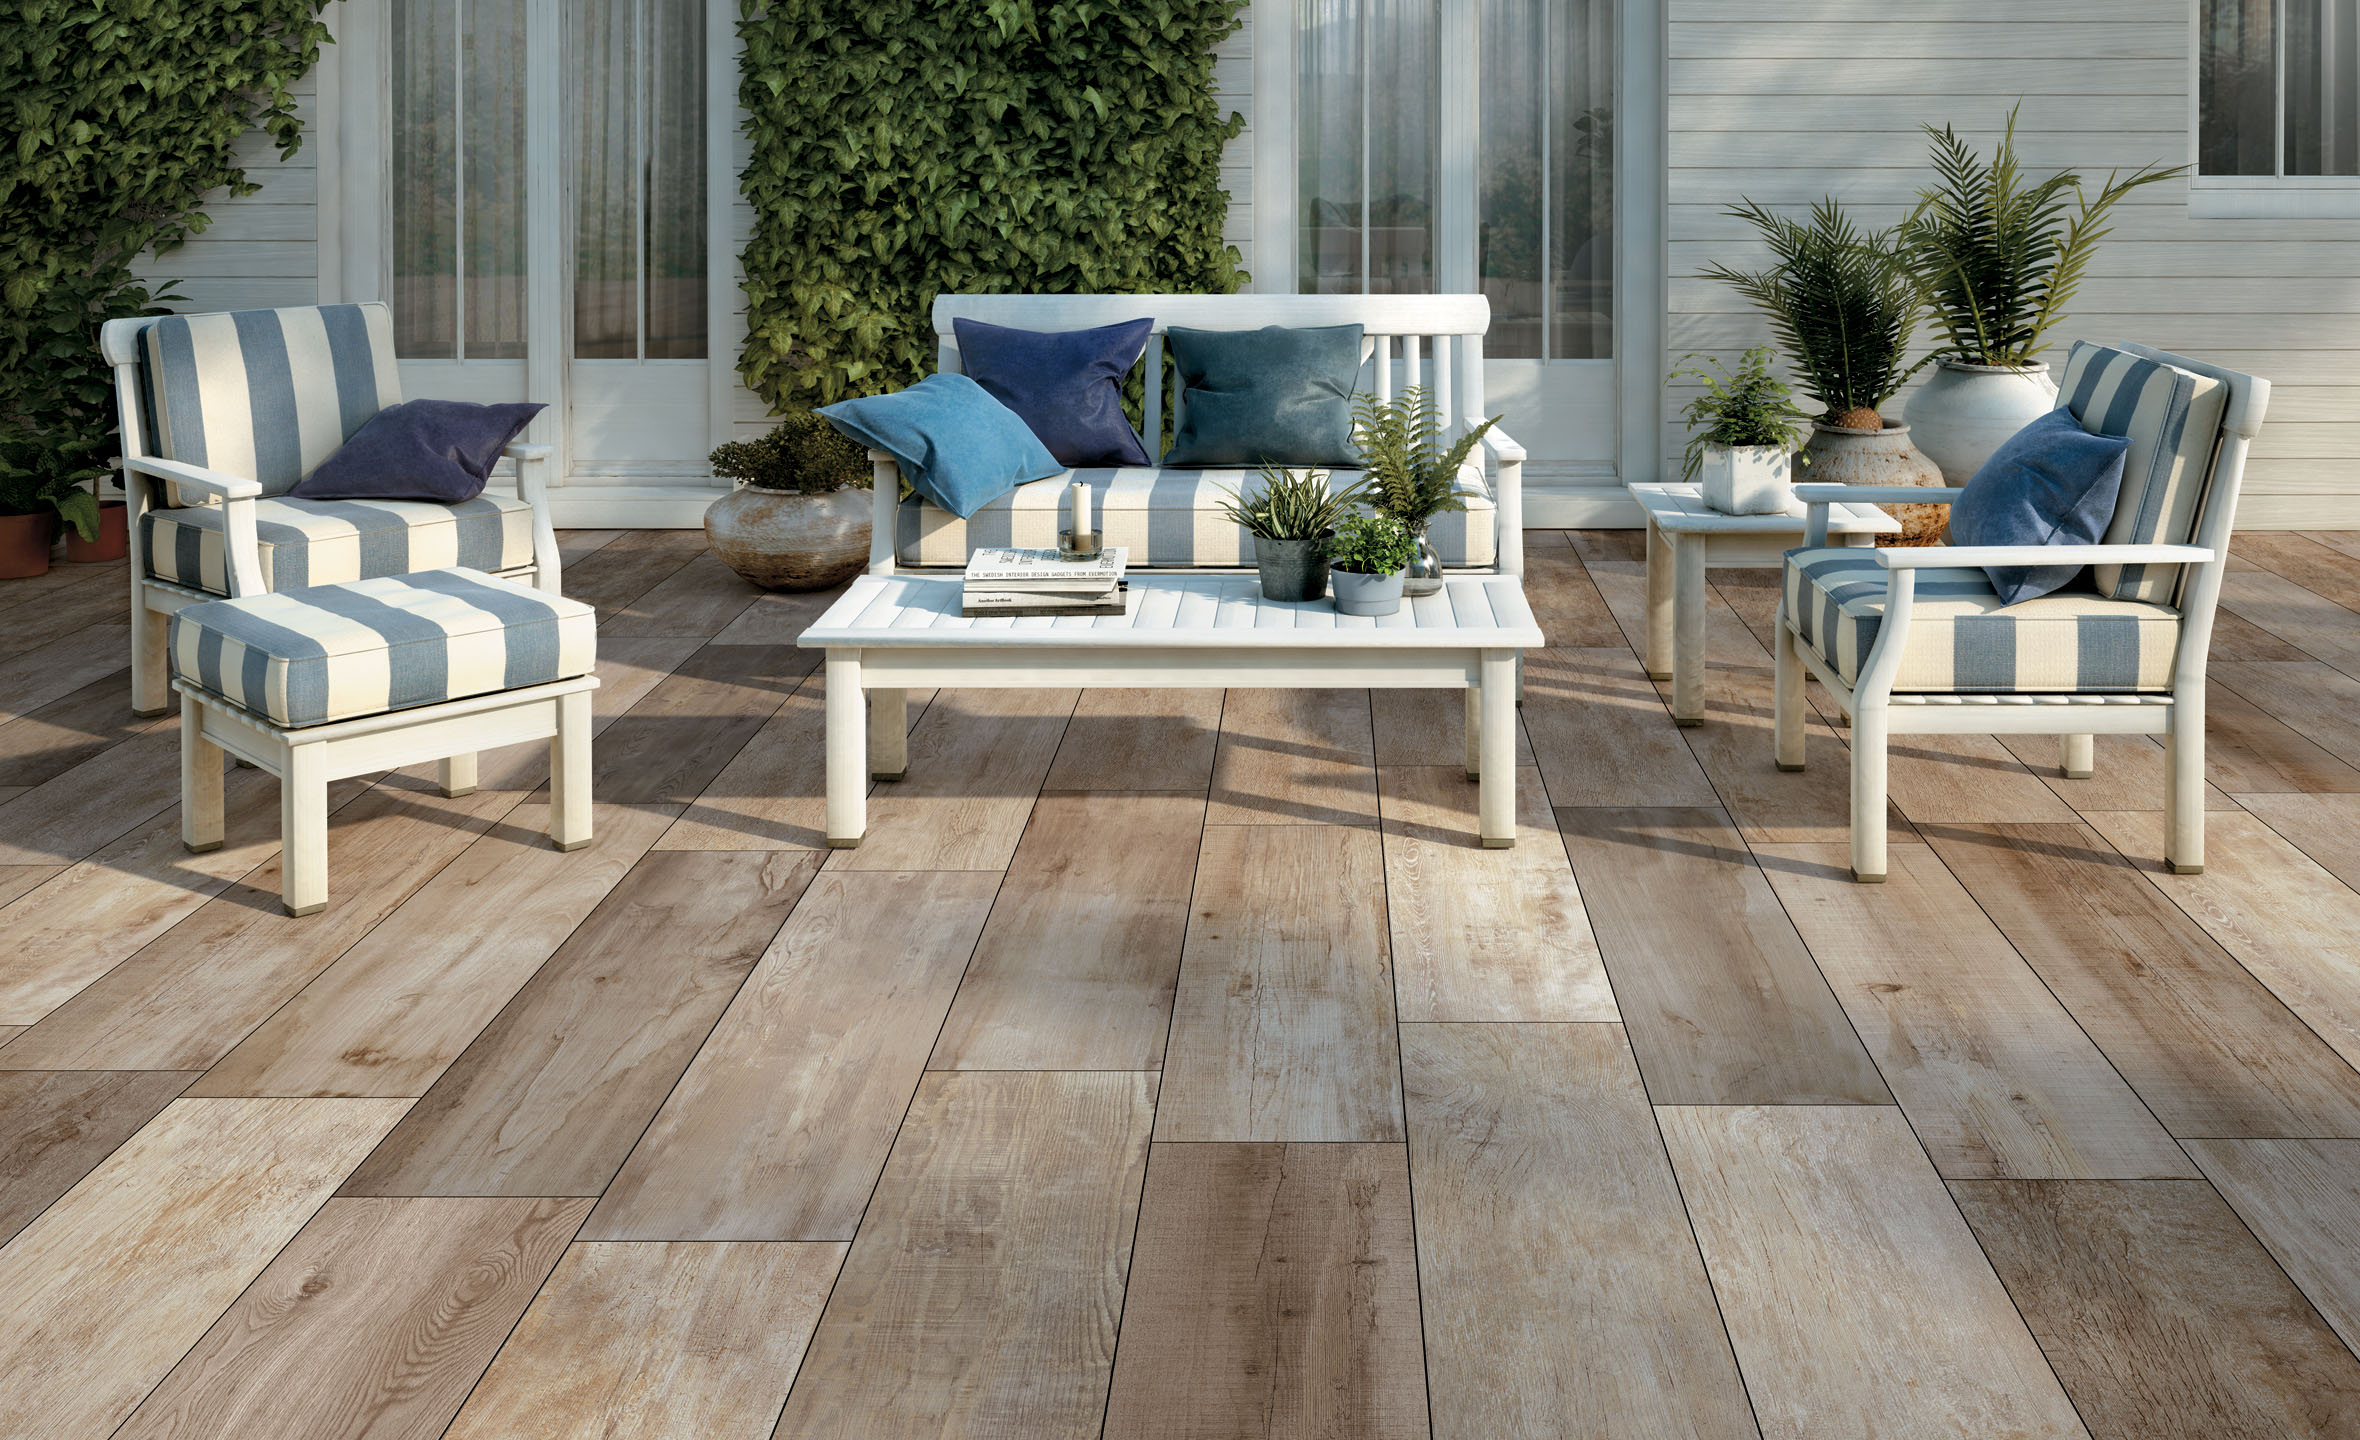 Outdoor tiles made from stylish ceramic mirage discover the collection dailygadgetfo Gallery